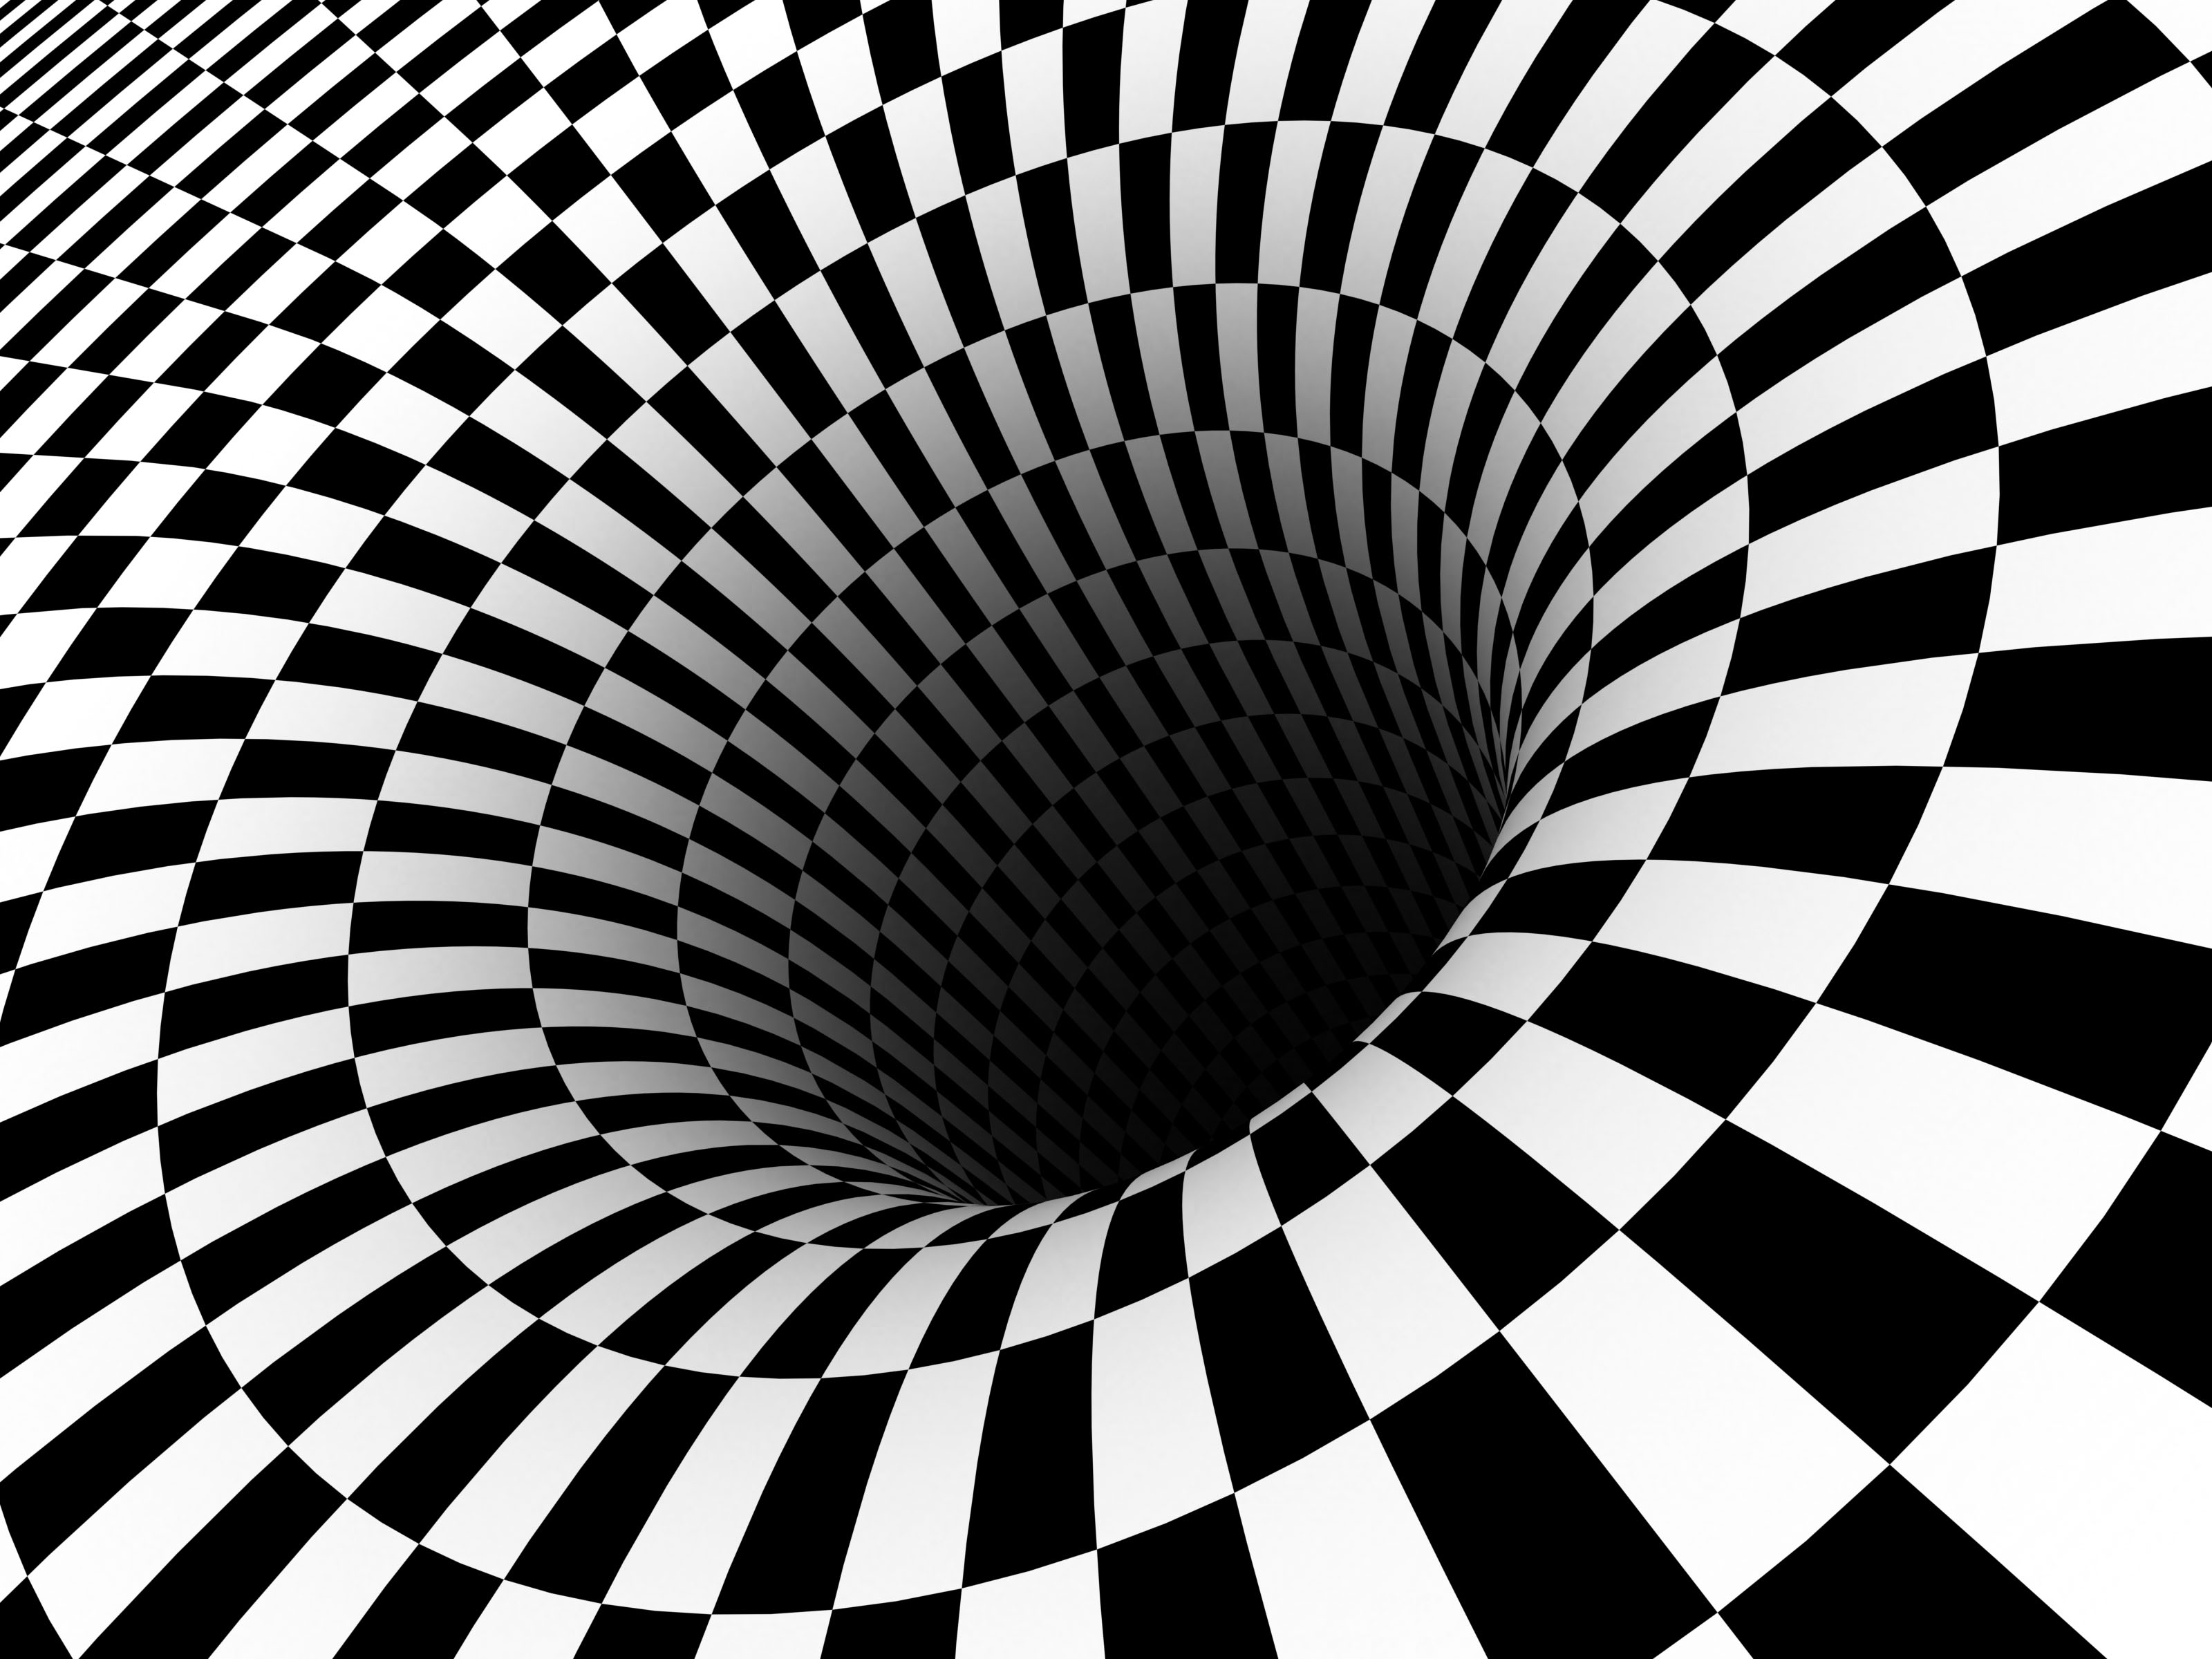 6874230-illusion-wallpaper